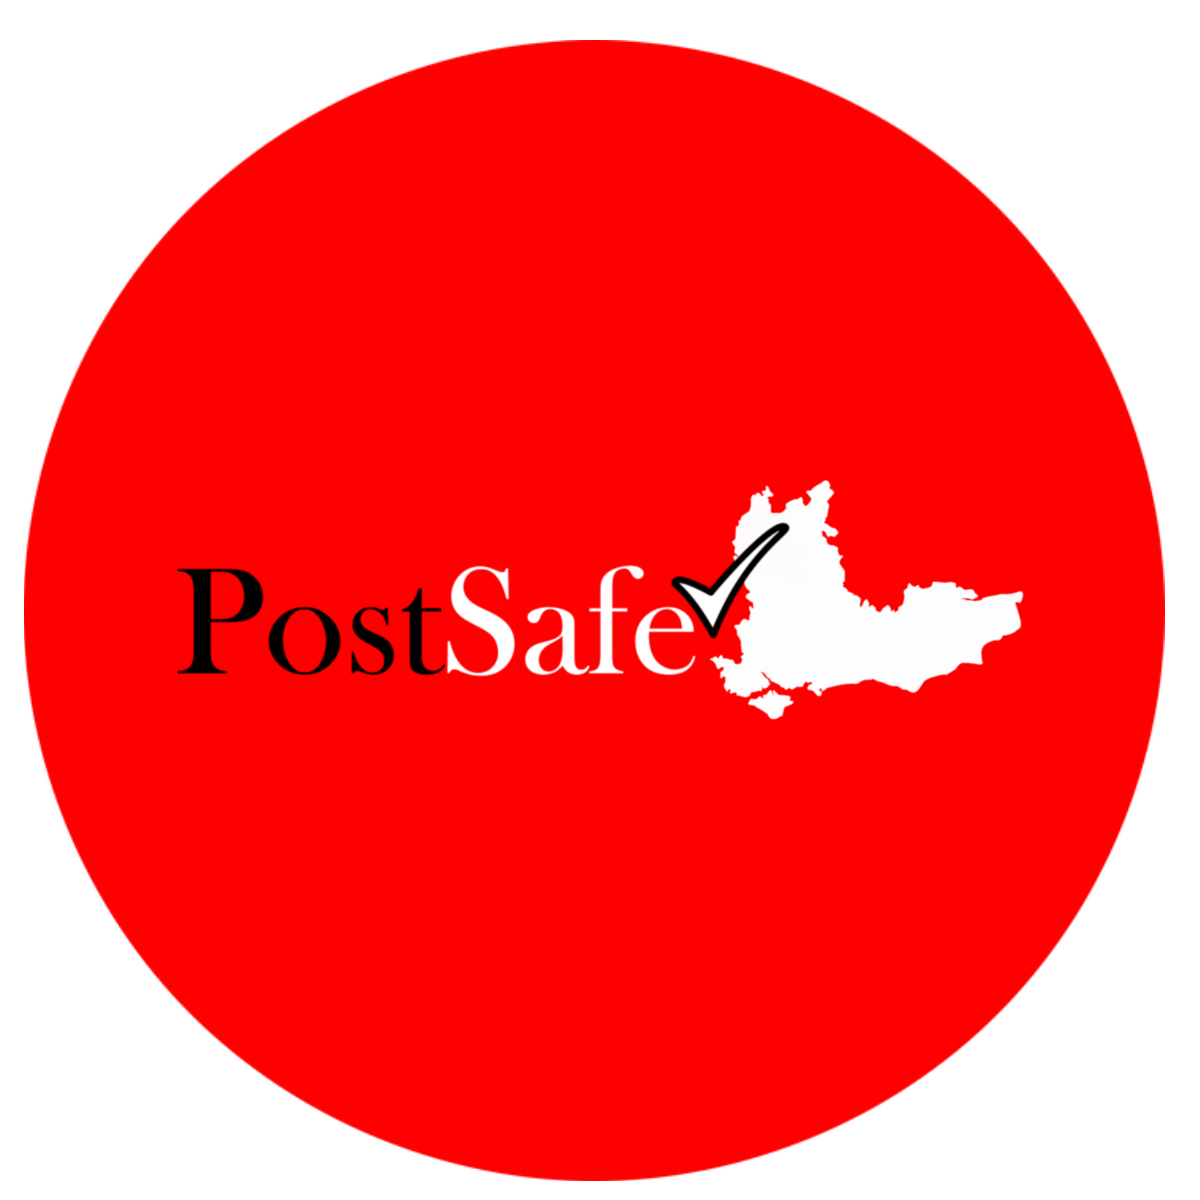 PostSafe (South East)